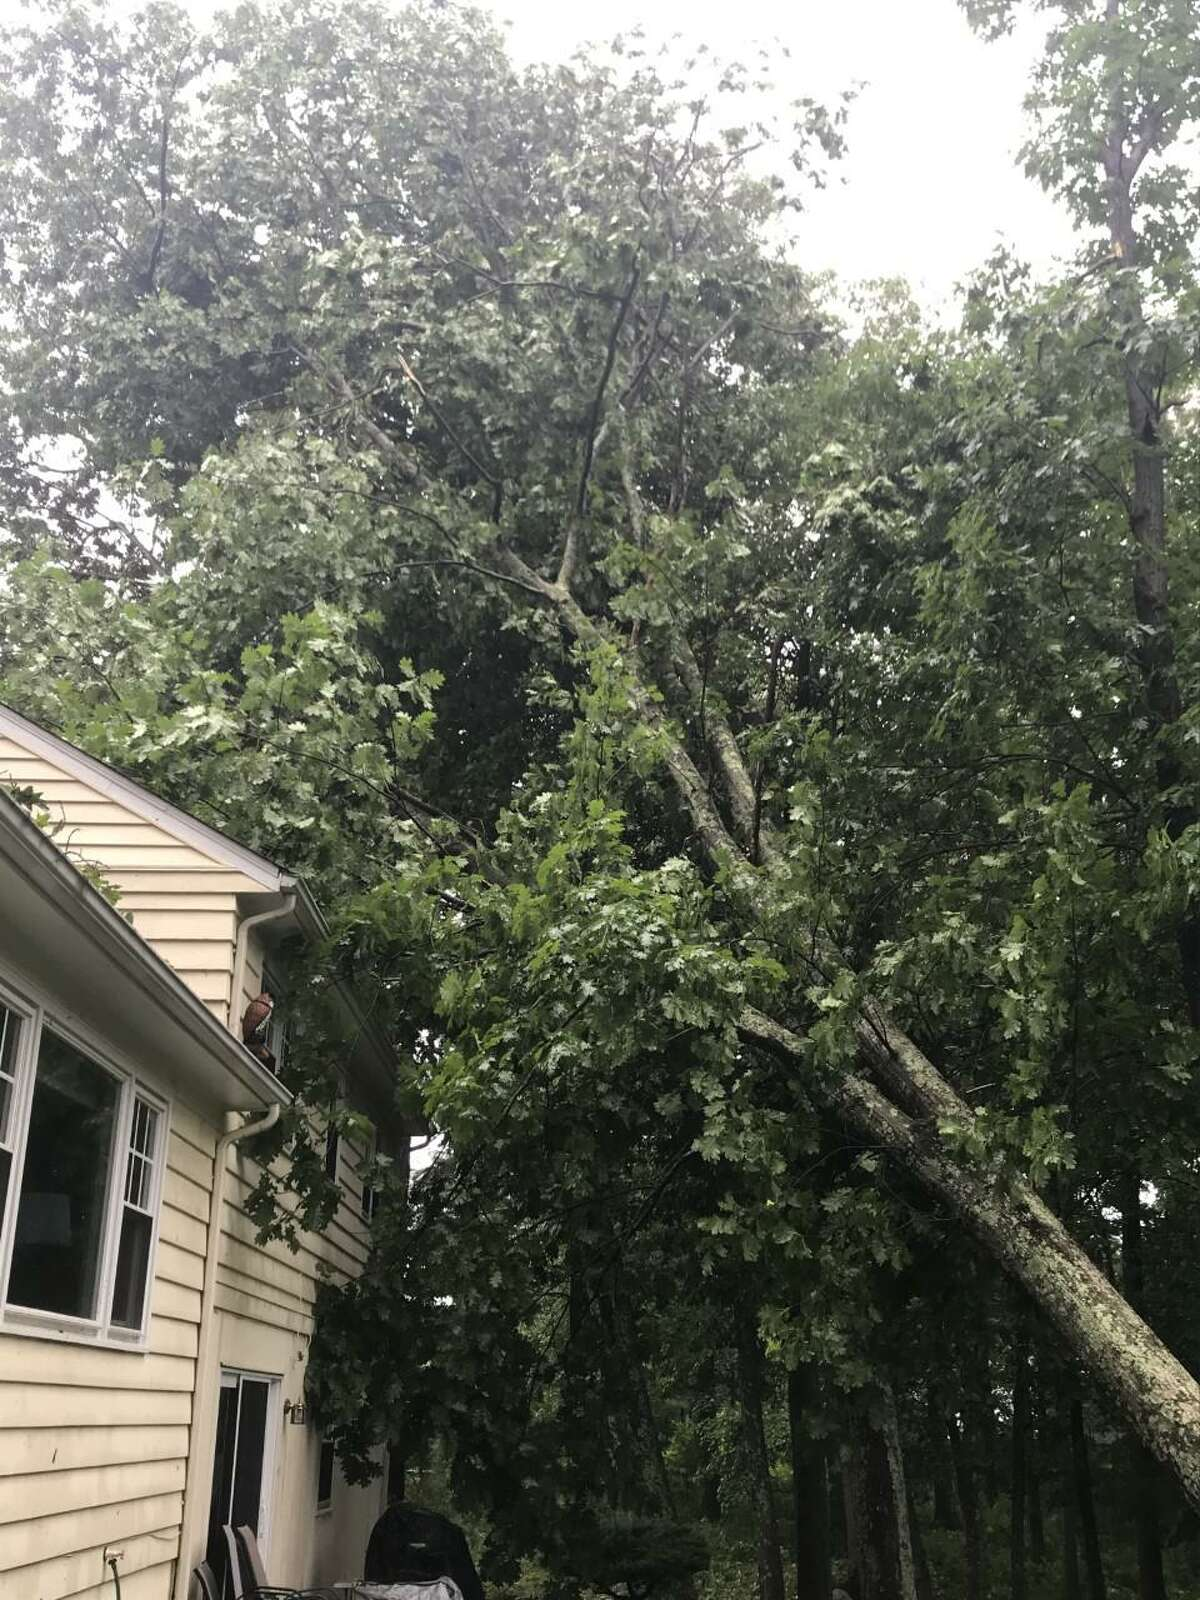 A tree lies against a home on Nod Hill Road in Wilton knocked over by high winds during Tropical Storm Isaias on Aug. 4.